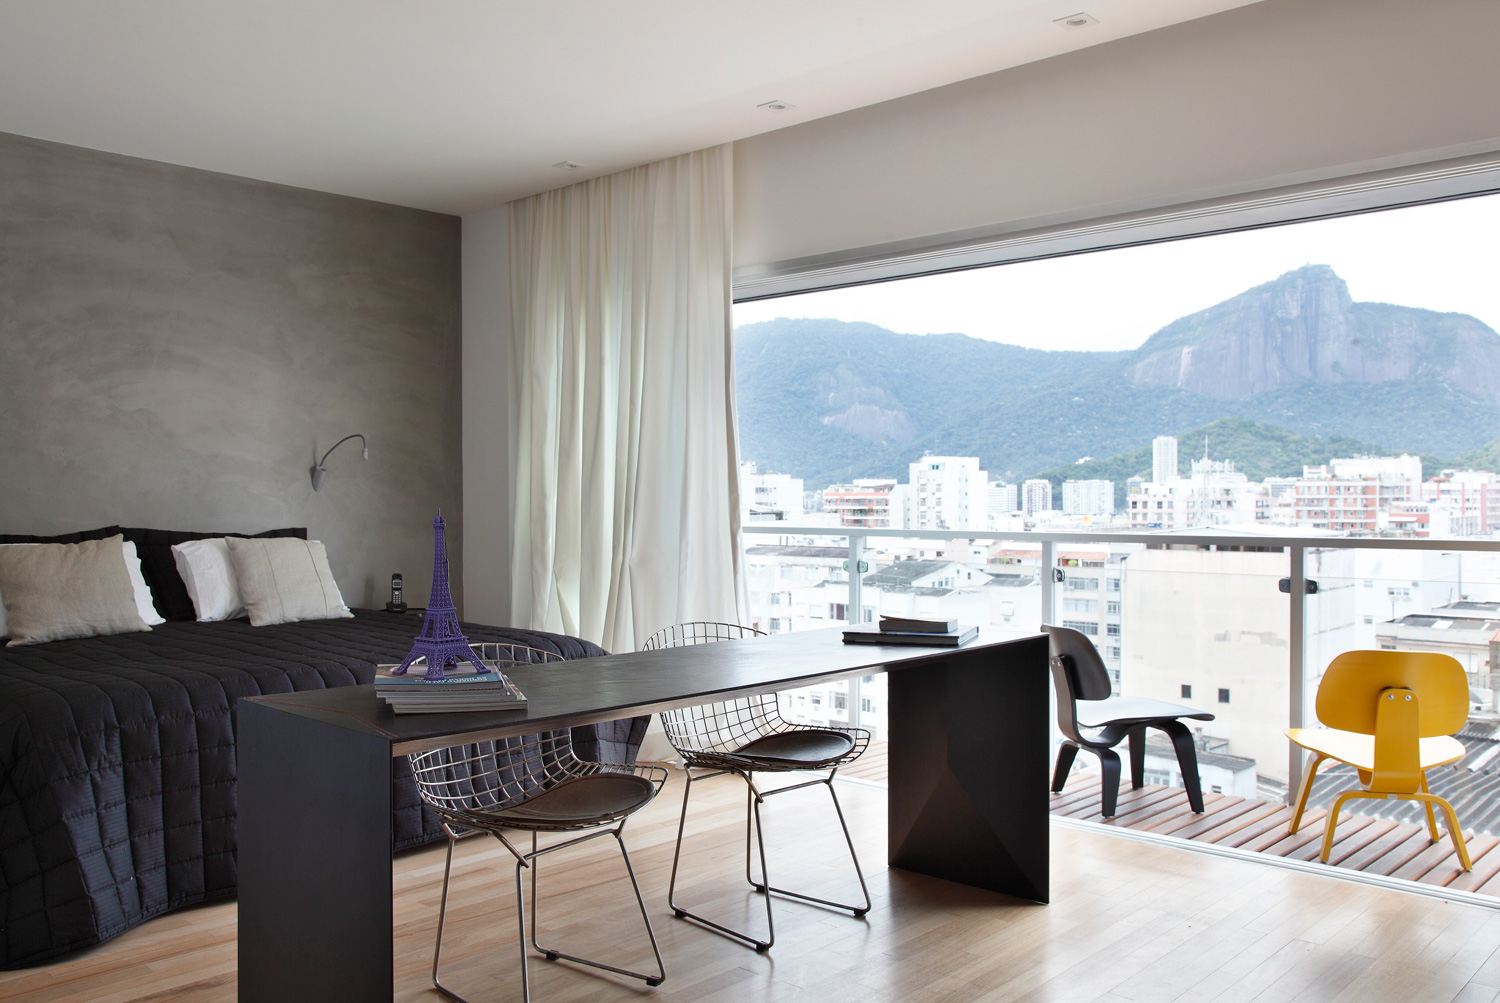 Penthouse in Rio de Janeiro with views of Ipanema